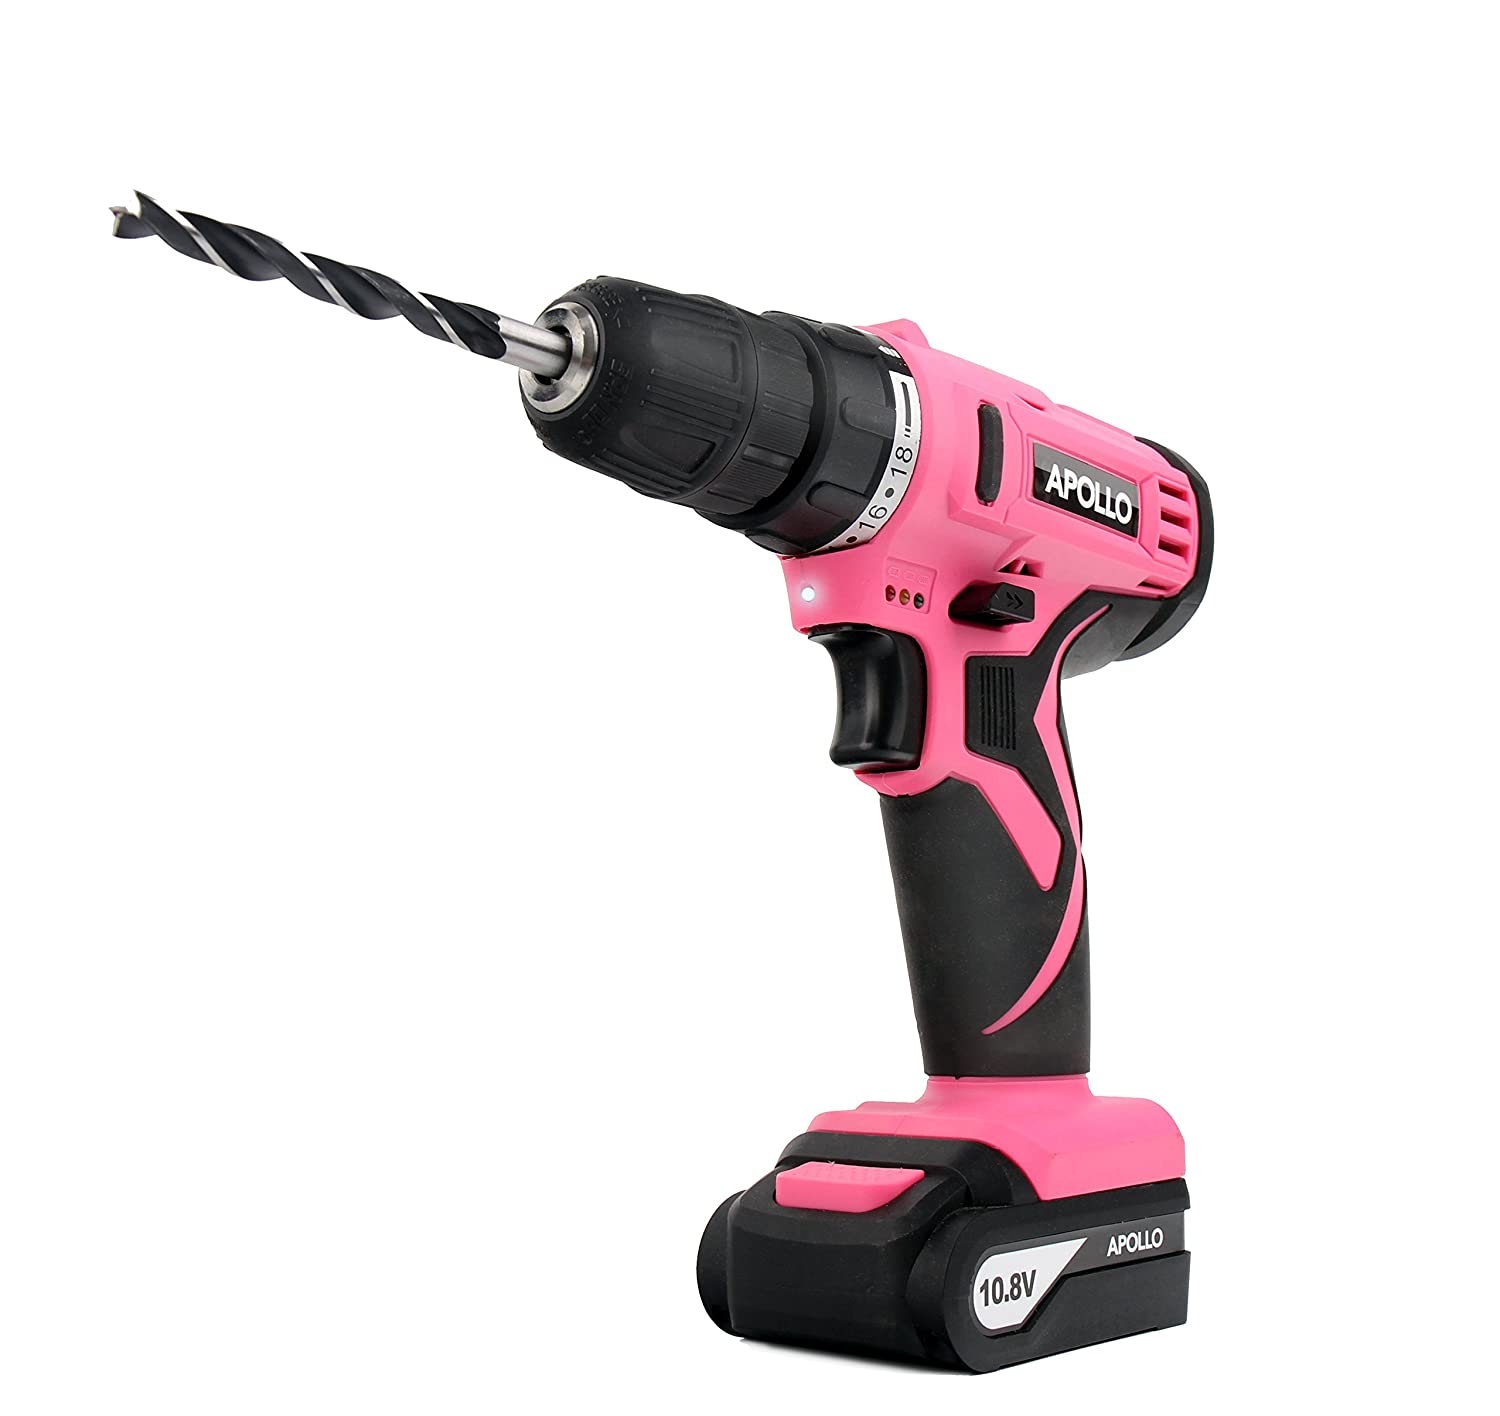 Apollo Tools DT4937P Powerful 10.8 V Lithium-Ion Cordless Drill with 30 Piece Drill Bit Set Pink Ribbon